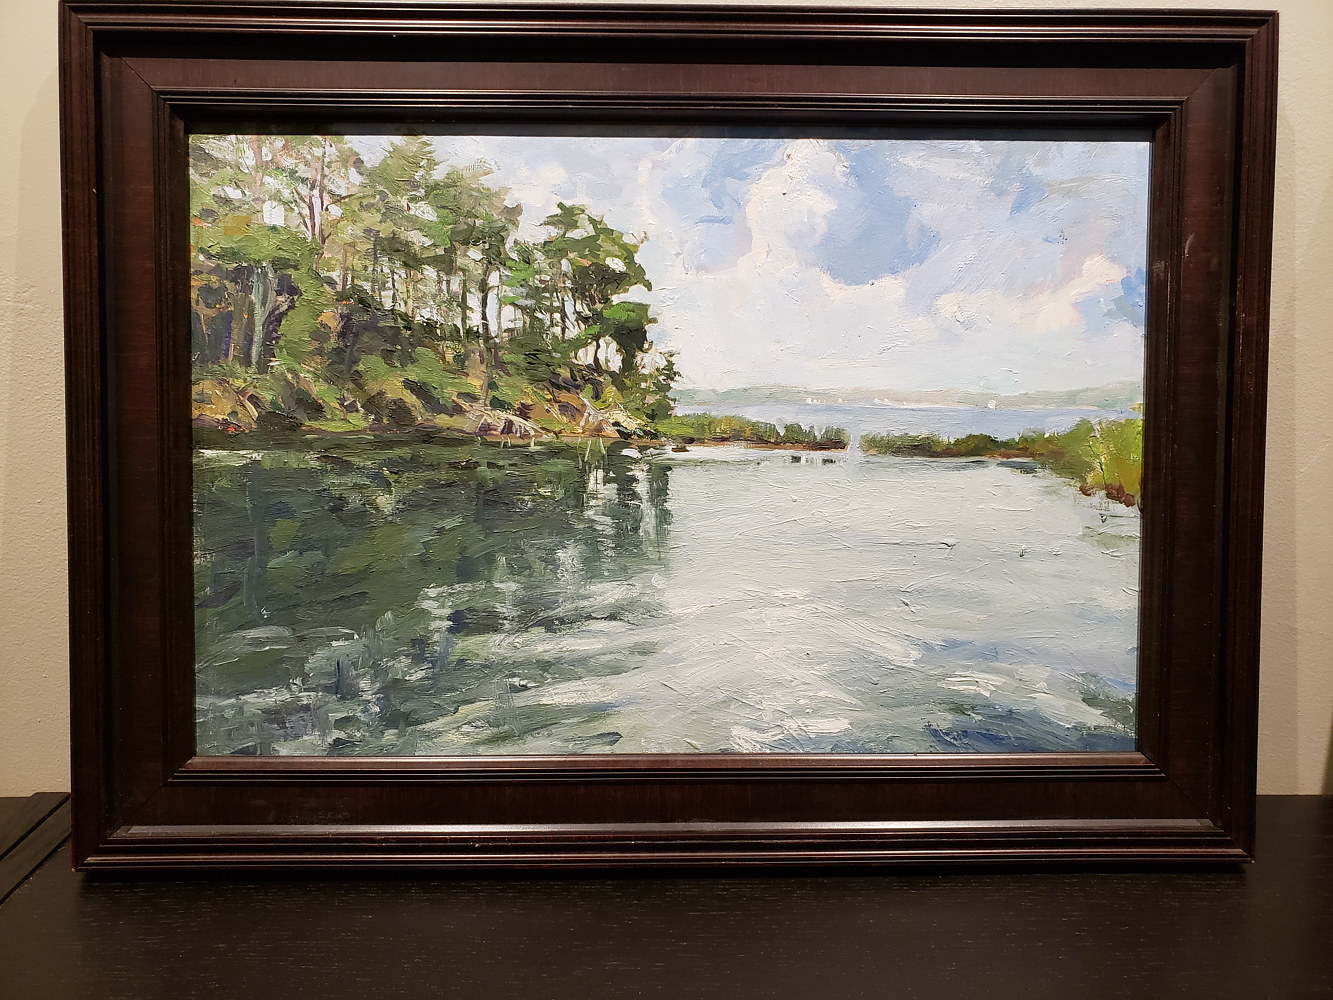 Painting Brewers pond w frame by Michael Gaudreau